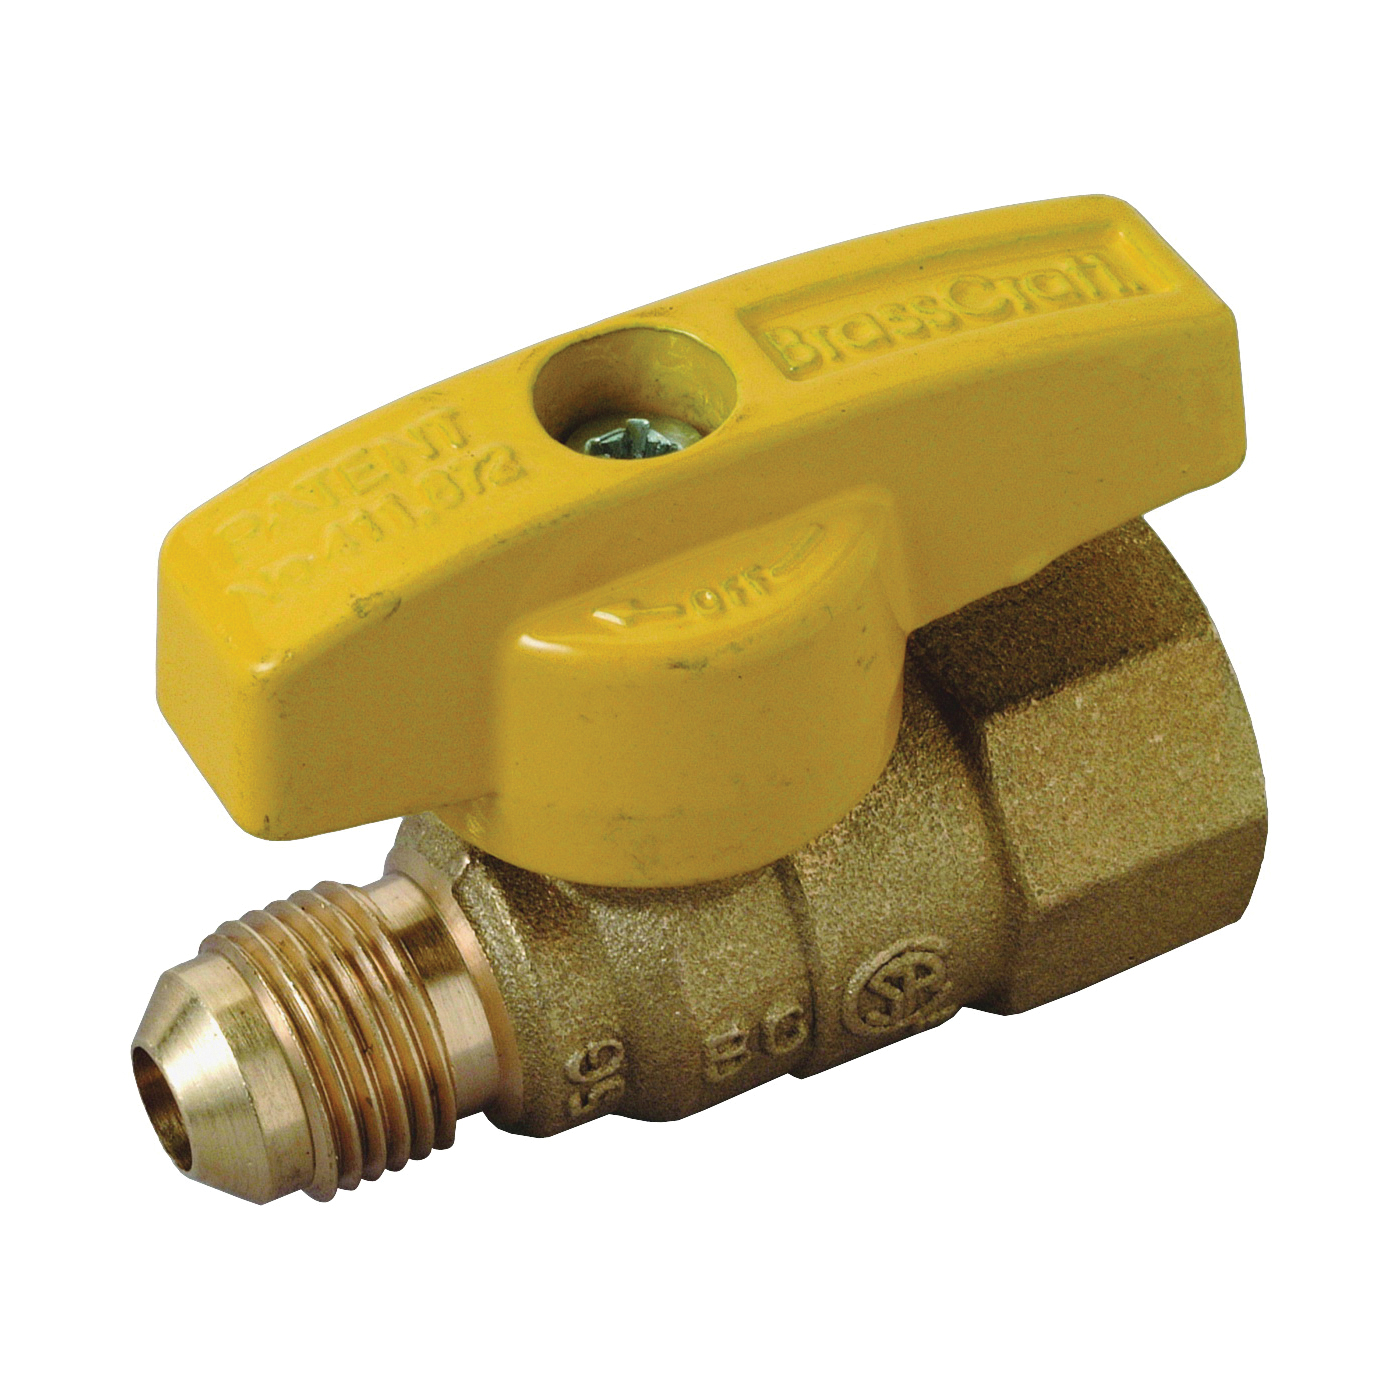 Picture of BrassCraft PSSL-12 Gas Ball Valve, 3/8 x 1/2 in Connection, Flared x FIP, 5 psi Pressure, Brass Body